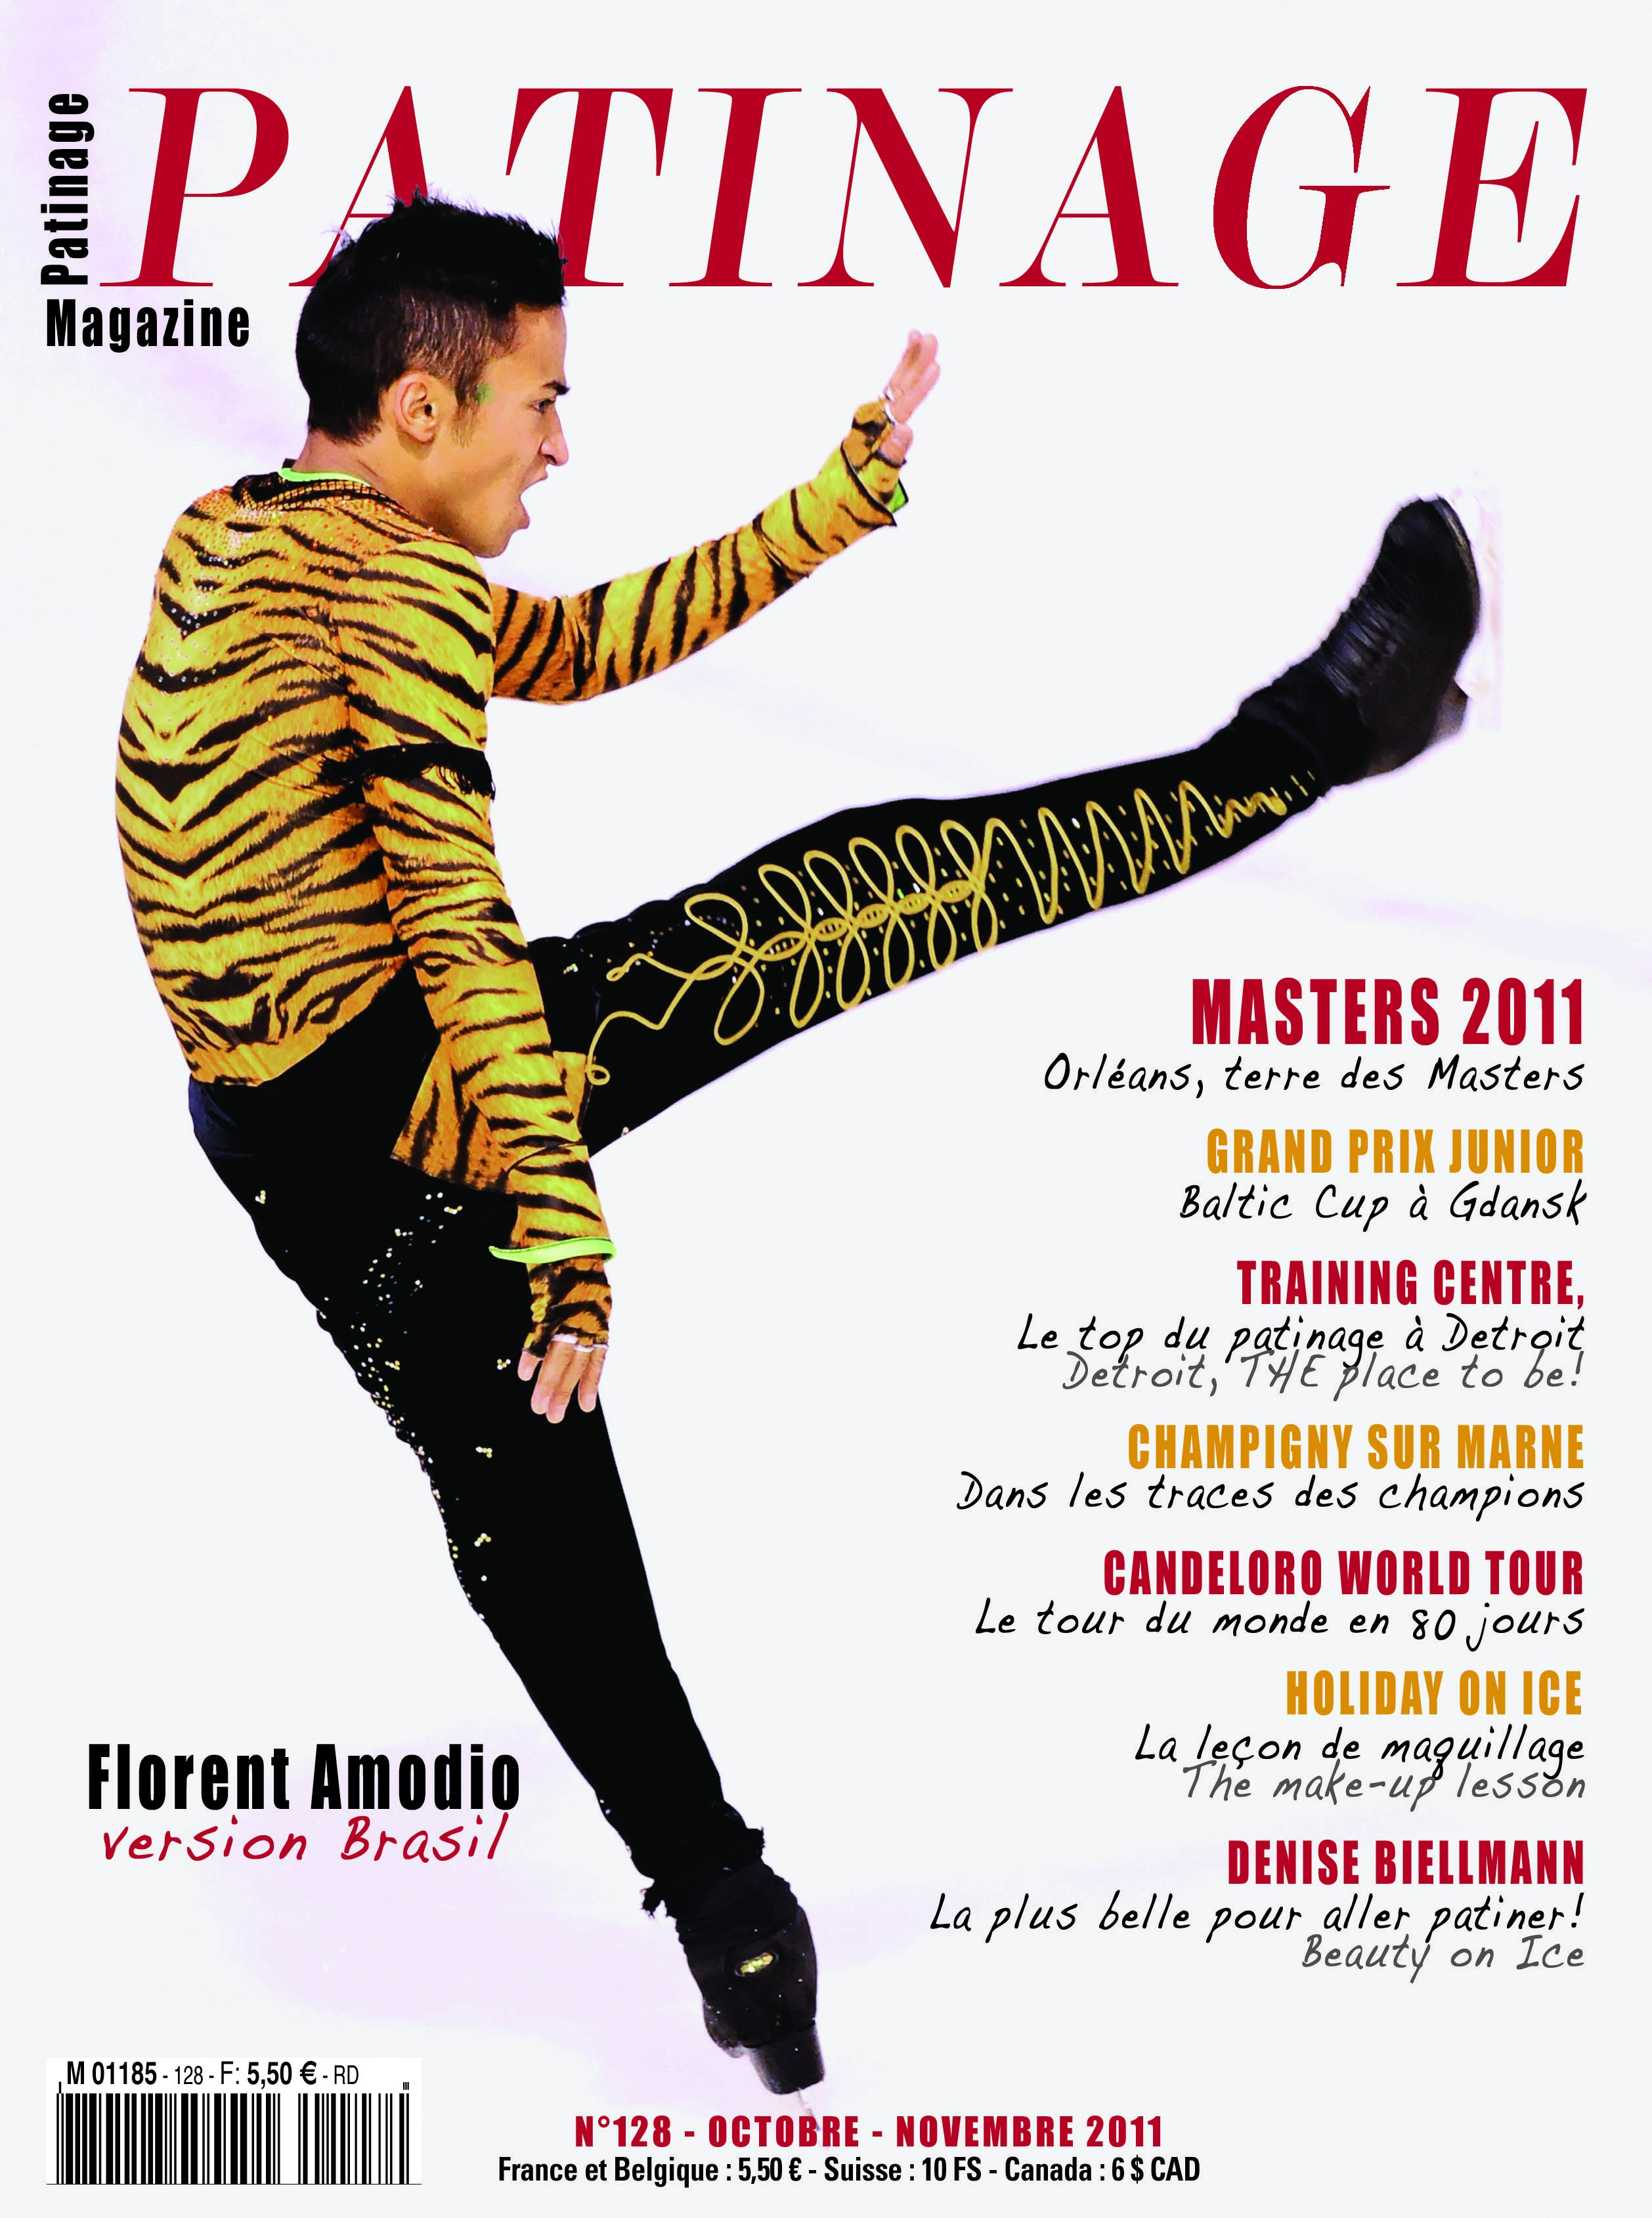 Patinage mag